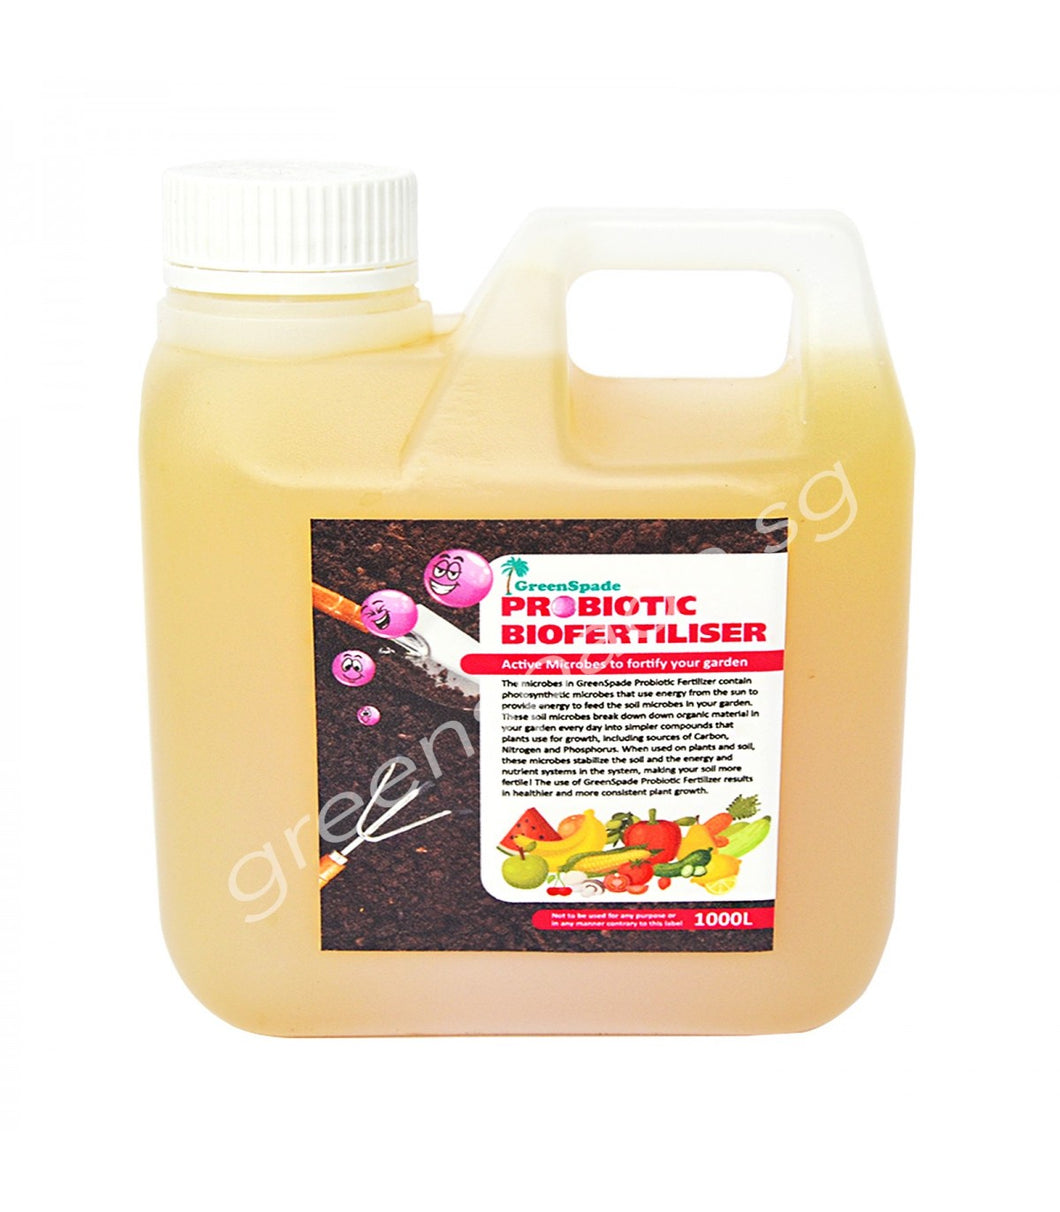 Probiotic Bio-Fertiliser 1L